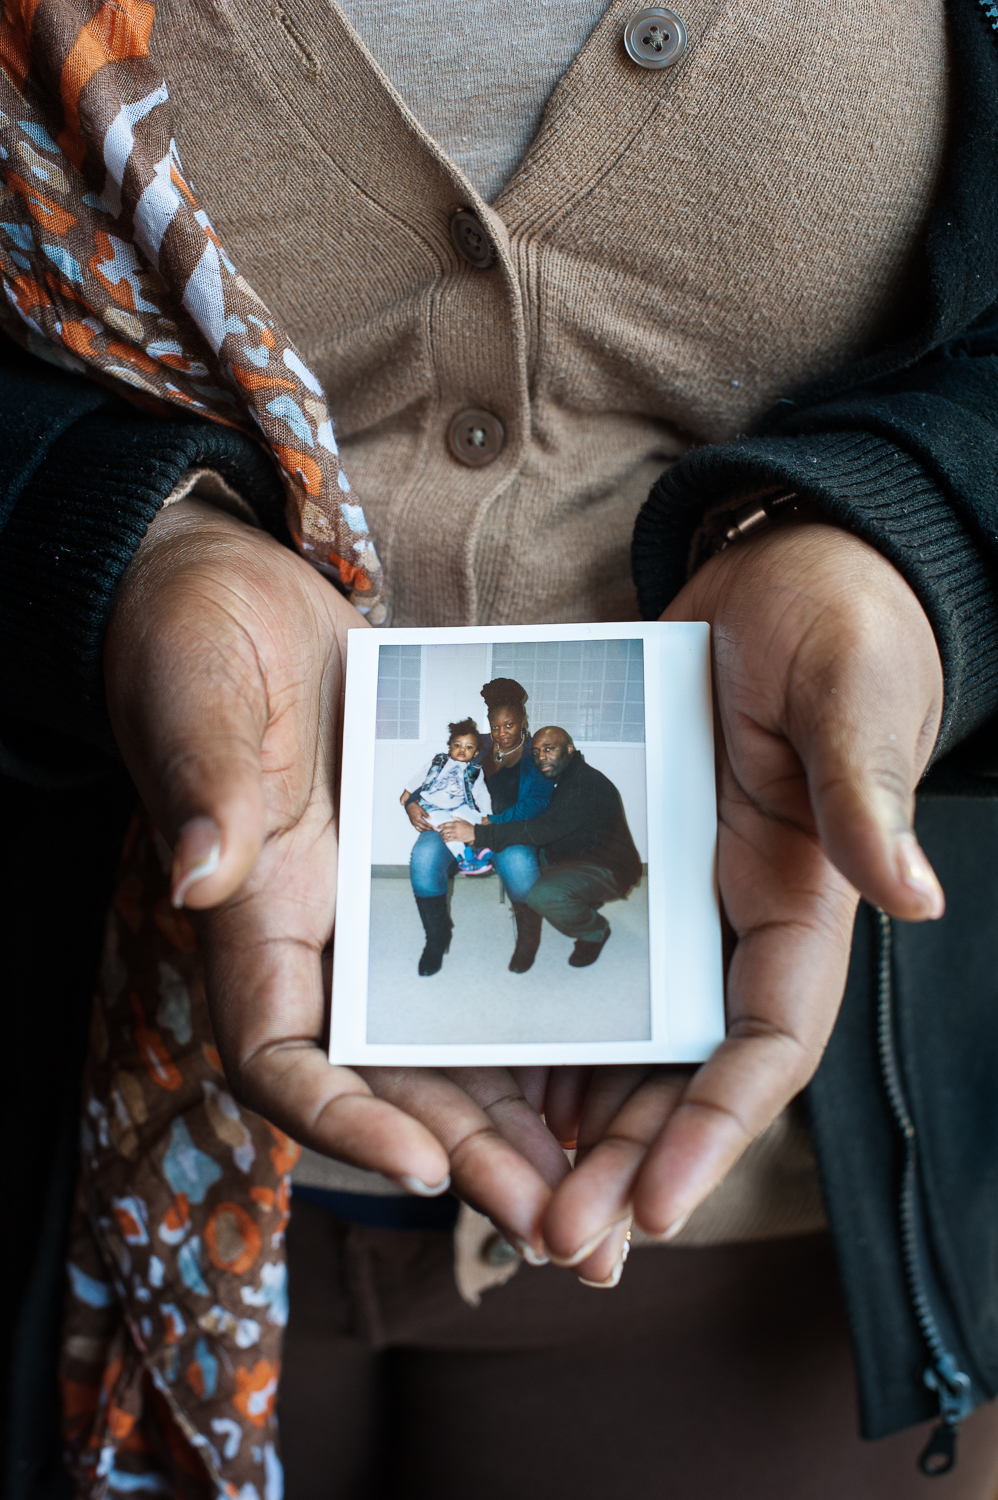 Candis holding one of the precious prison polaroids, the only pictures people have of their loved ones on the inside. This picture is showing her with her husband and her daughter. March 26, 2014.